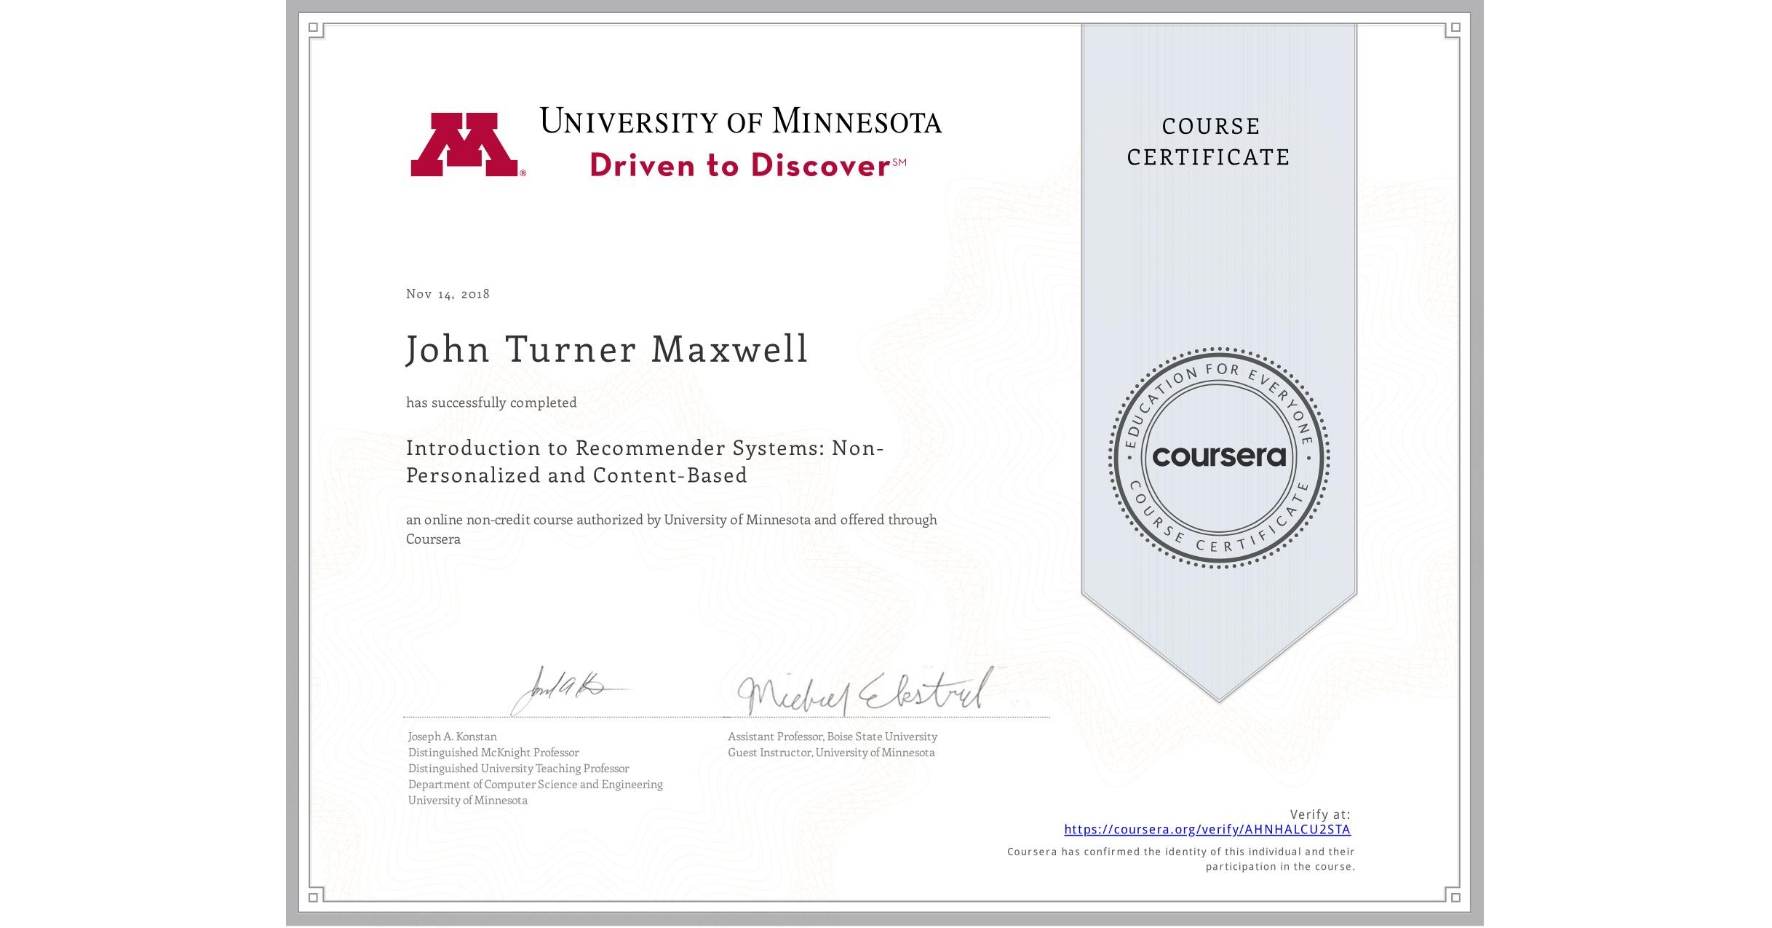 View certificate for John Turner Maxwell, Introduction to Recommender Systems:  Non-Personalized and Content-Based, an online non-credit course authorized by University of Minnesota and offered through Coursera